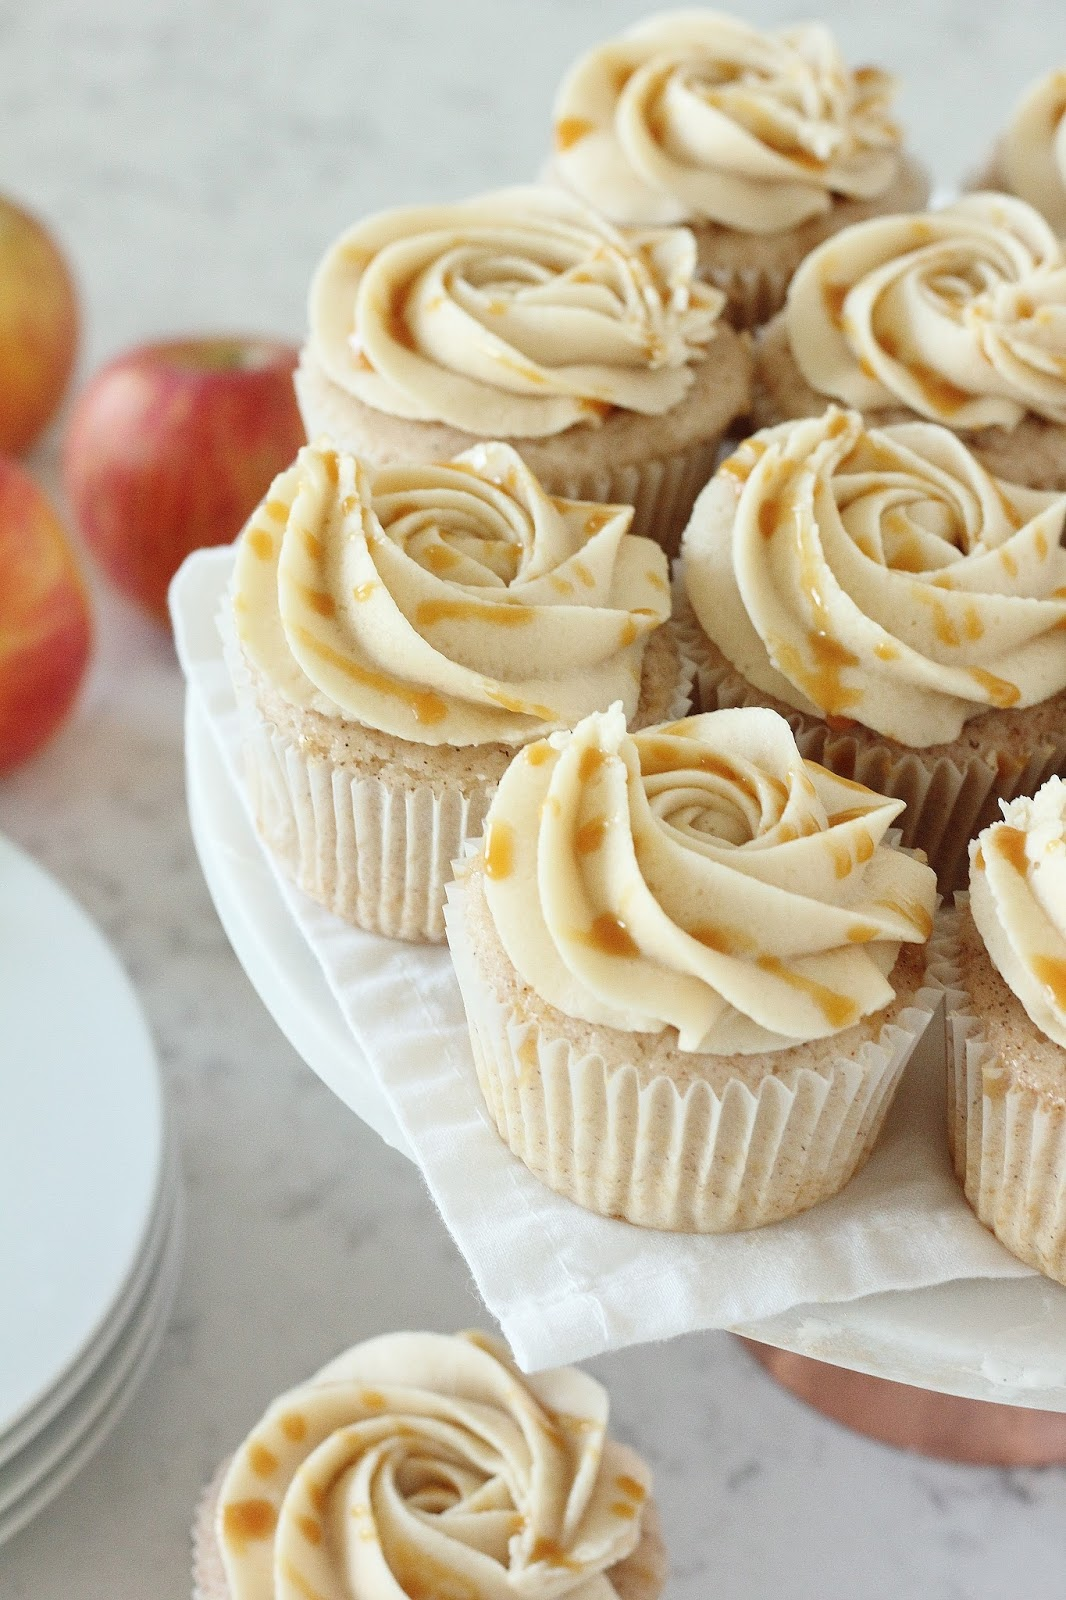 Salted Caramel Apple Cider Cinnamon Cupcakes